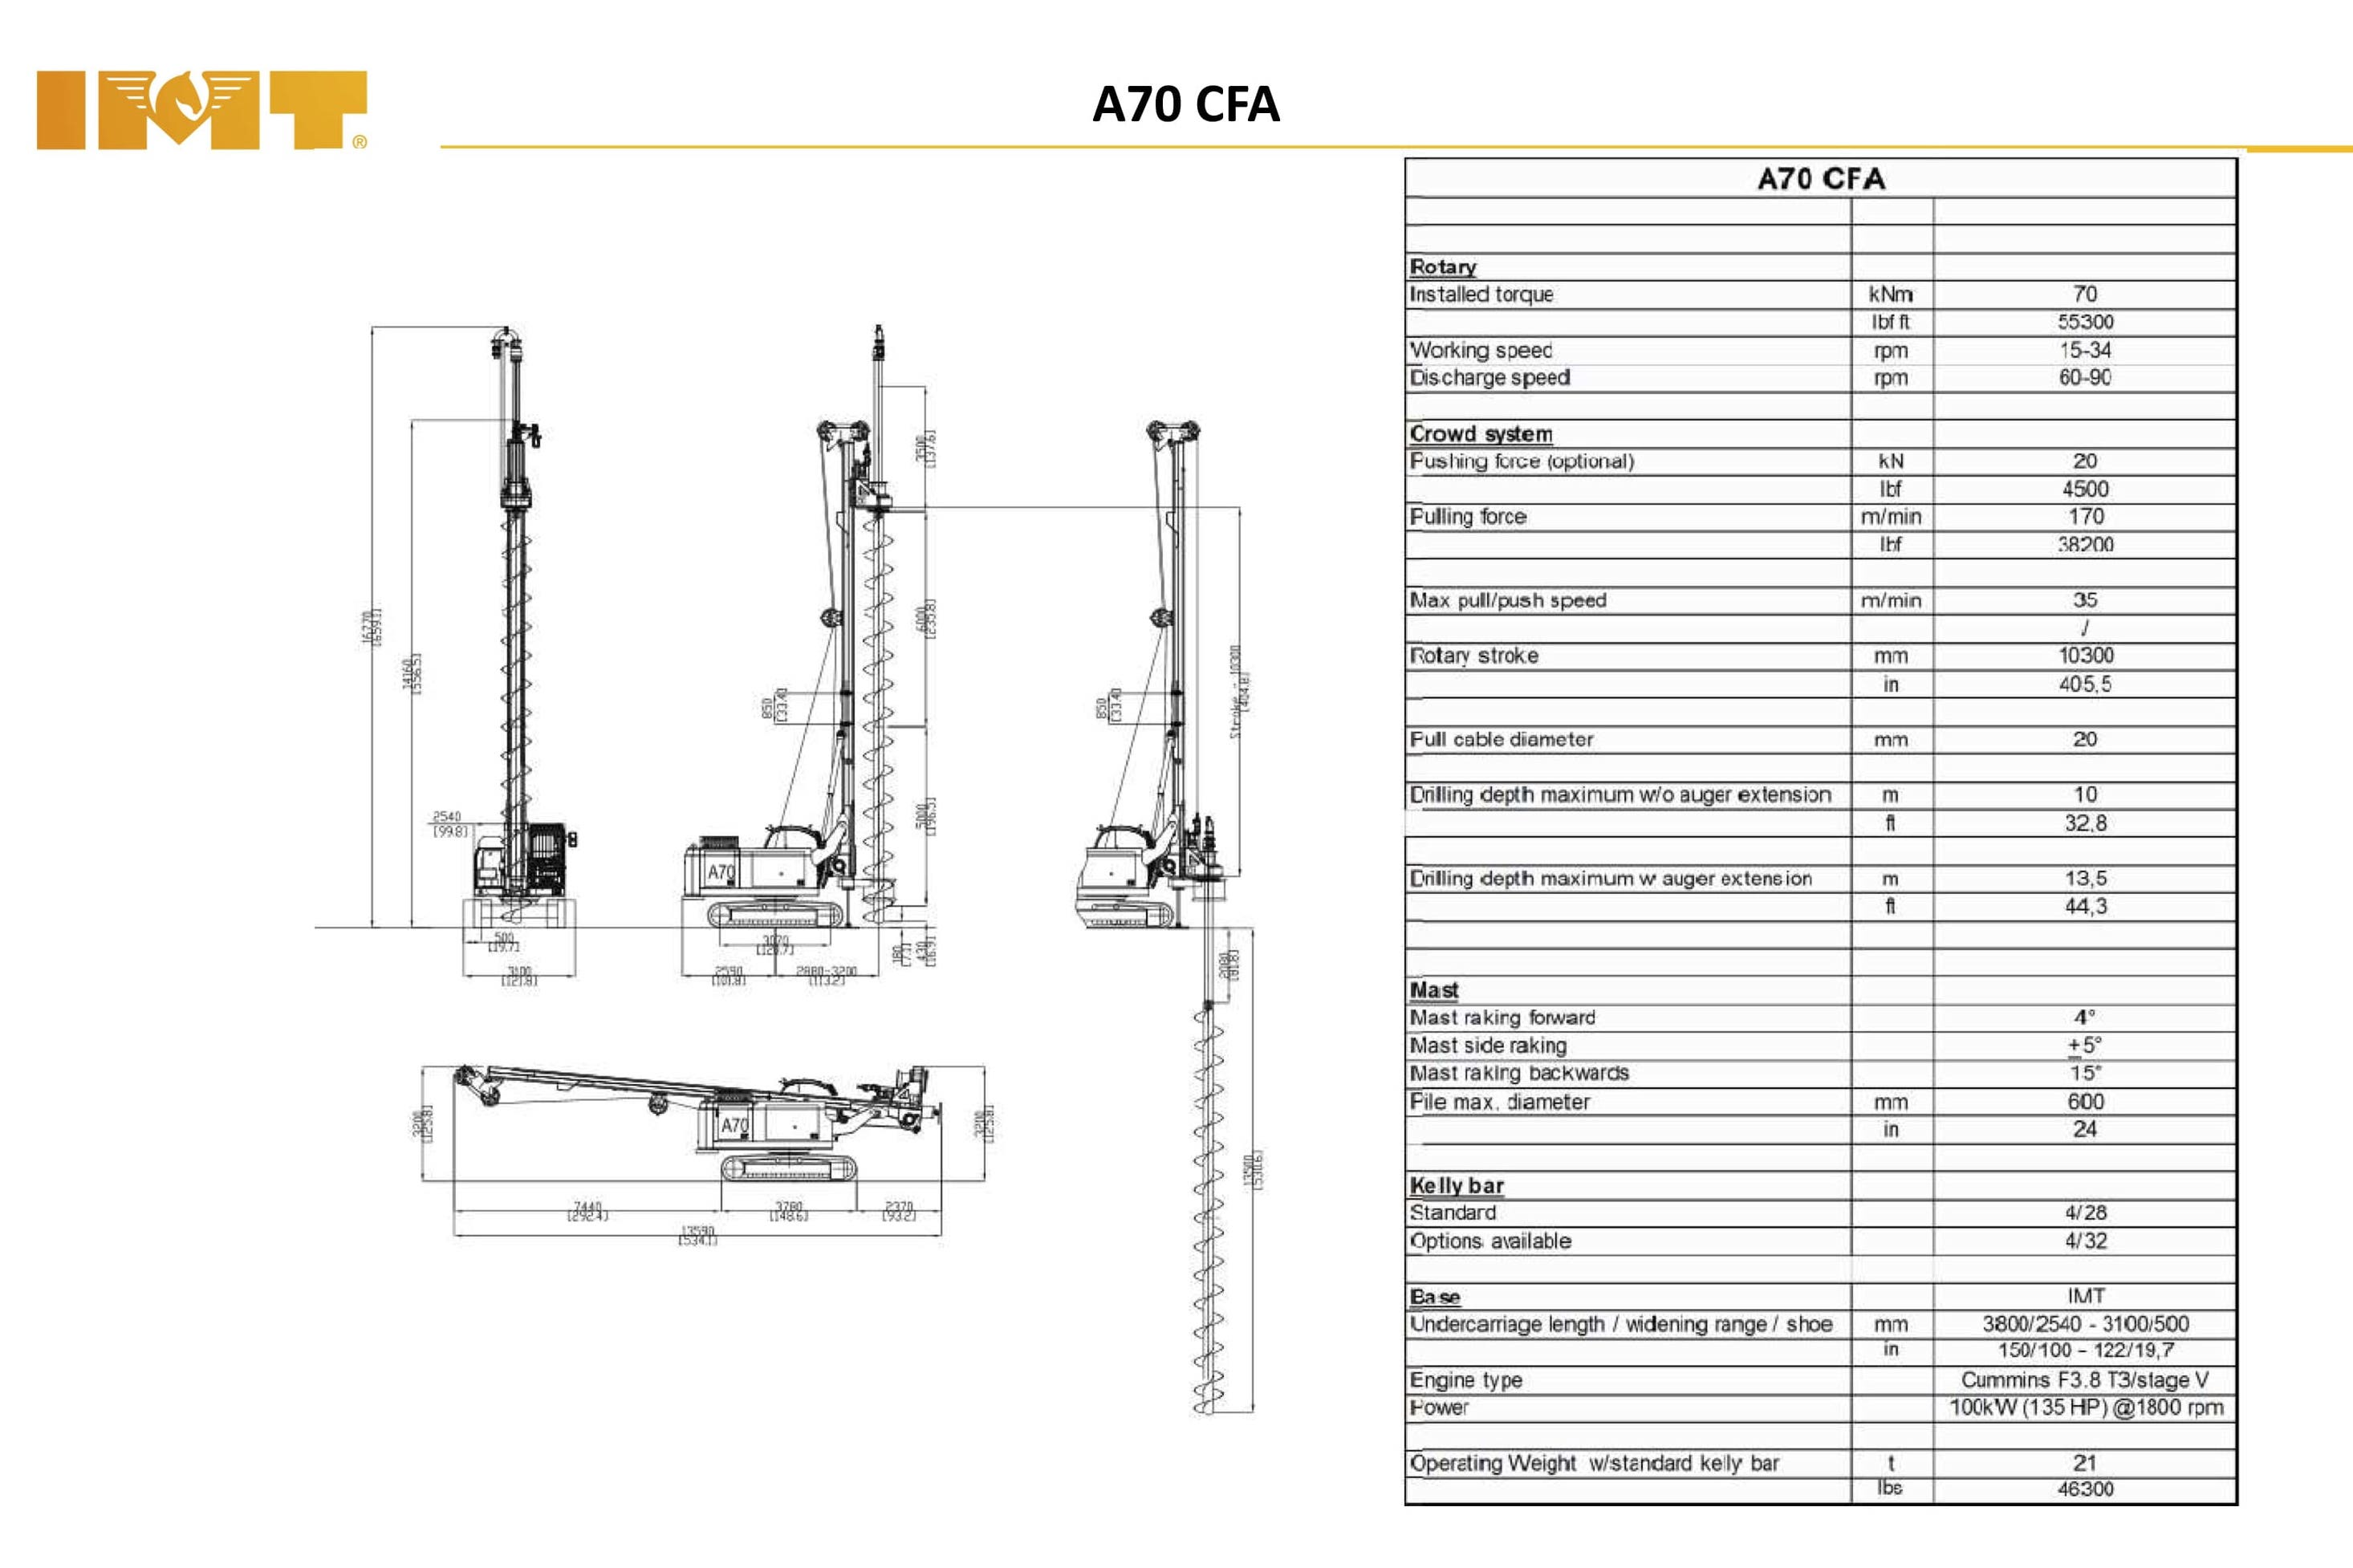 imt-industria-meccanica-trivelle-drill-rigs-drilling-machines-products-project-A70-cfa-version-setup